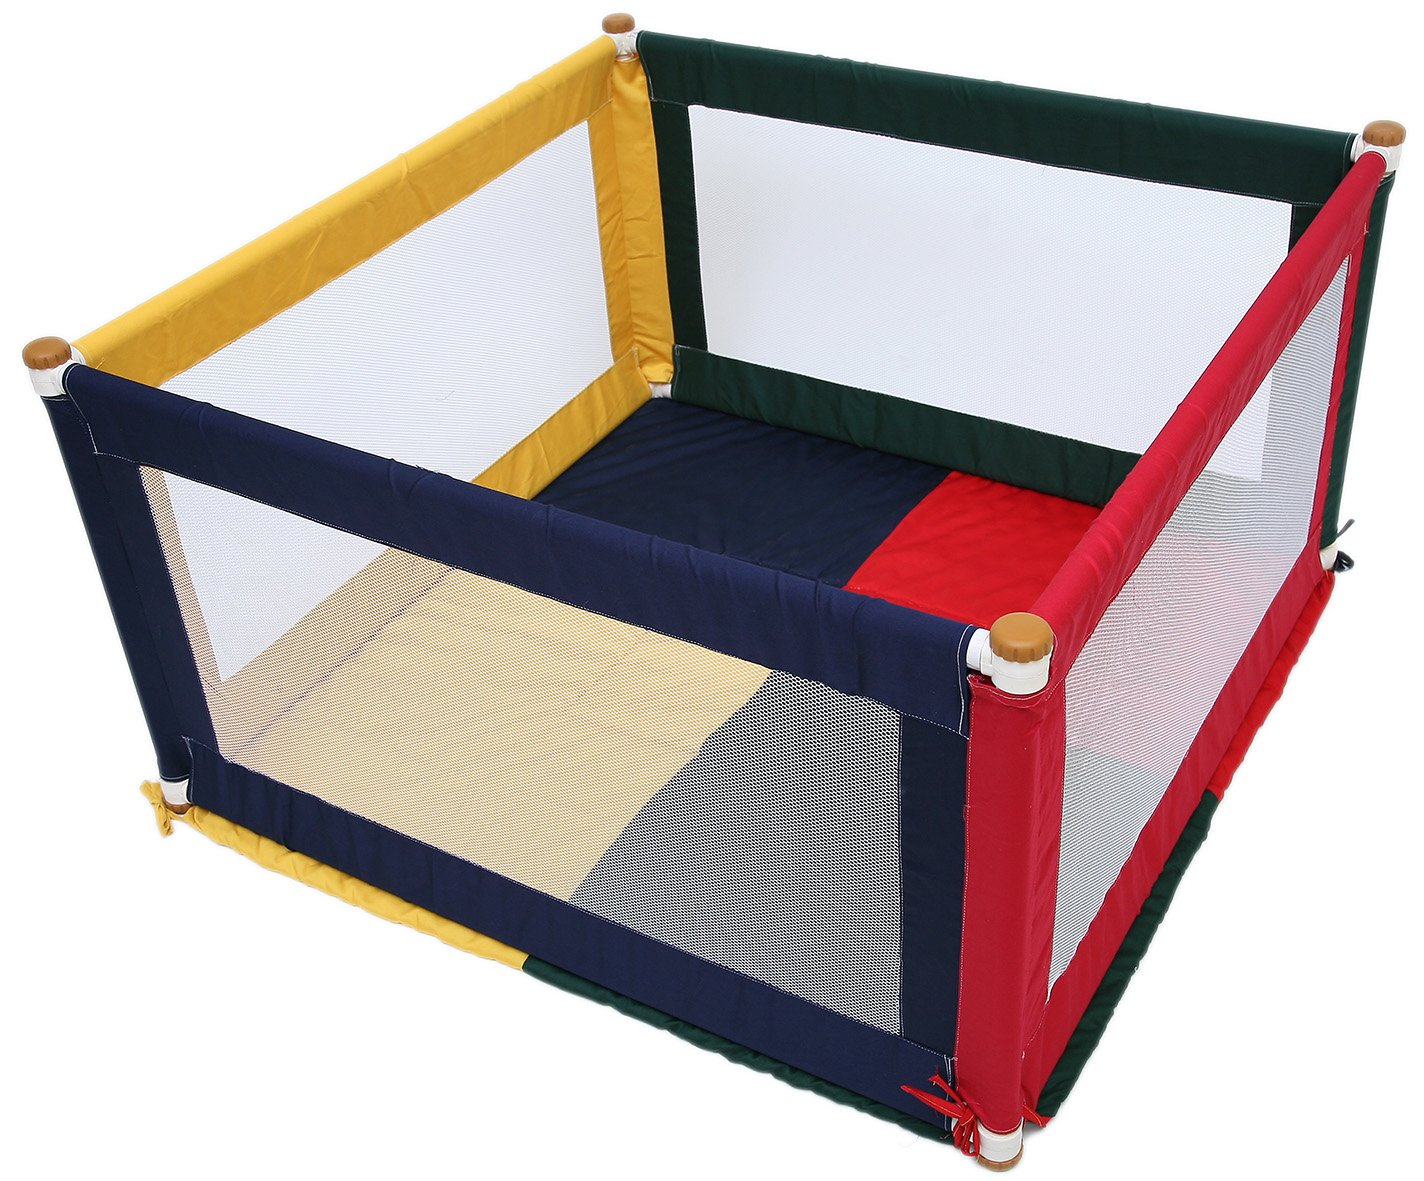 TikkTokk Pokano Fabric Playpen/Mat (Square, Colourful) TikkTokk Fabric Baby Playpen - keep baby safe & secure whilst providing a large play area Crafted in beautiful, durable polycotton Thick padded, fitted floor mat 1